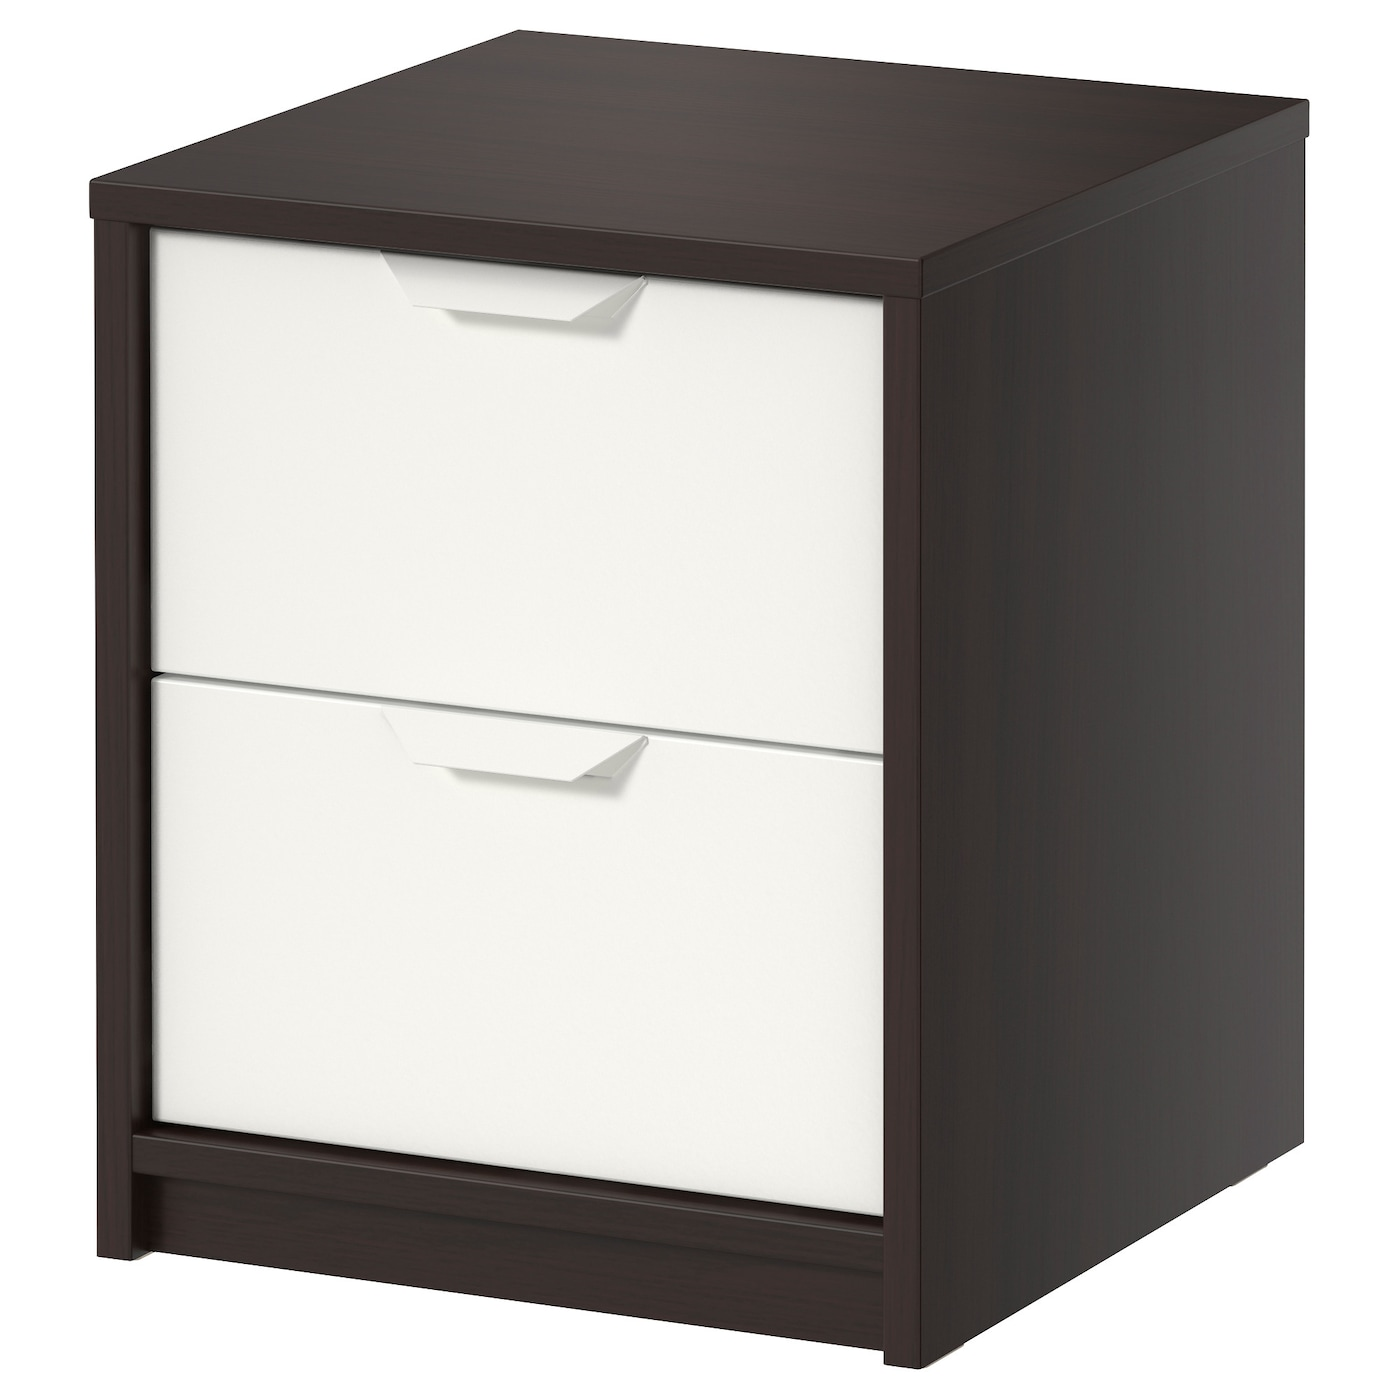 askvoll commode 2 tiroirs brun noir blanc 41x48 cm ikea. Black Bedroom Furniture Sets. Home Design Ideas